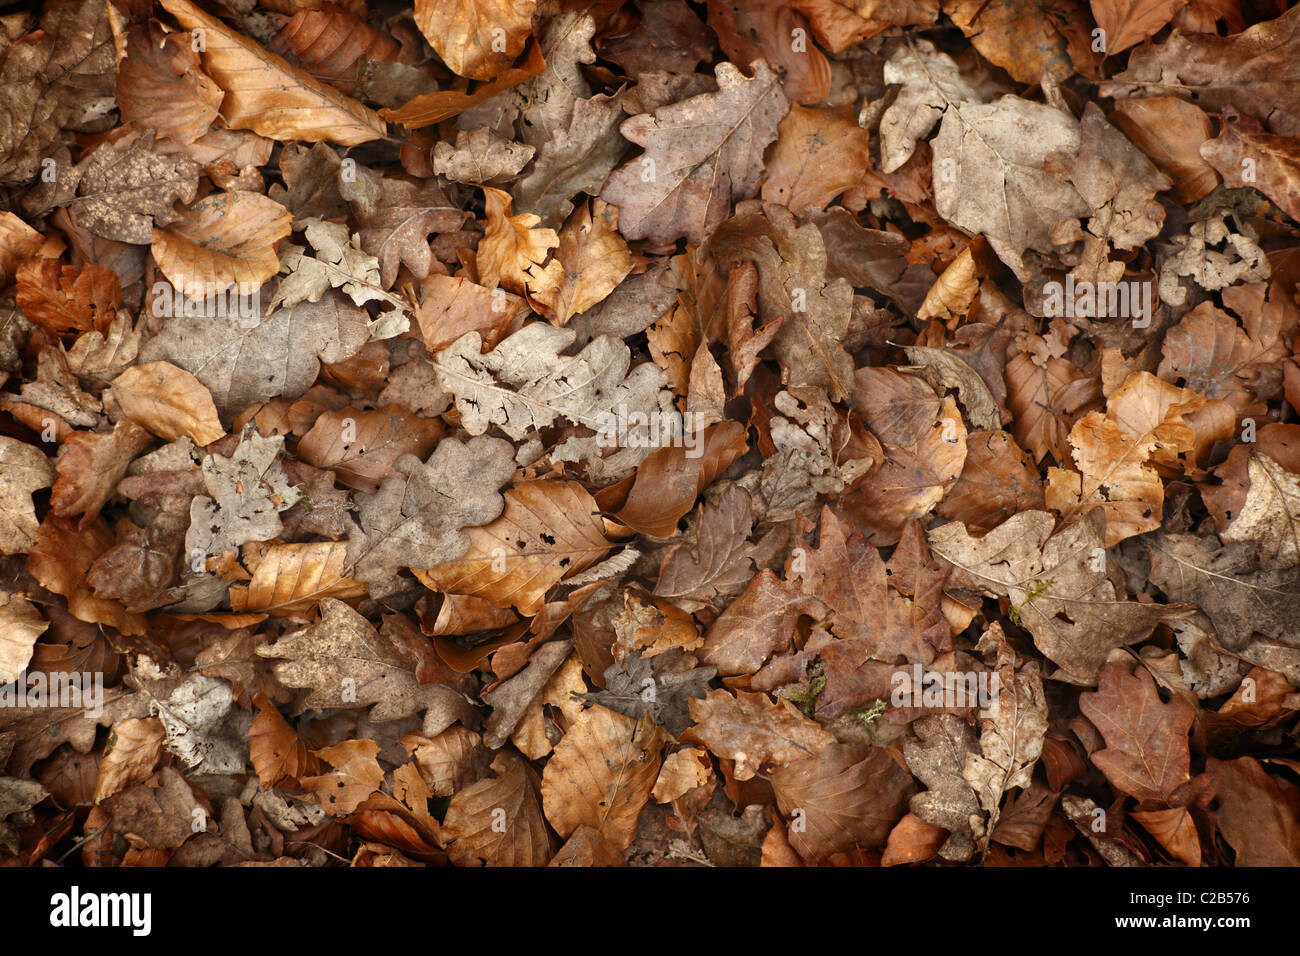 Dry Leaves Stock Photos & Dry Leaves Stock Images - Alamy